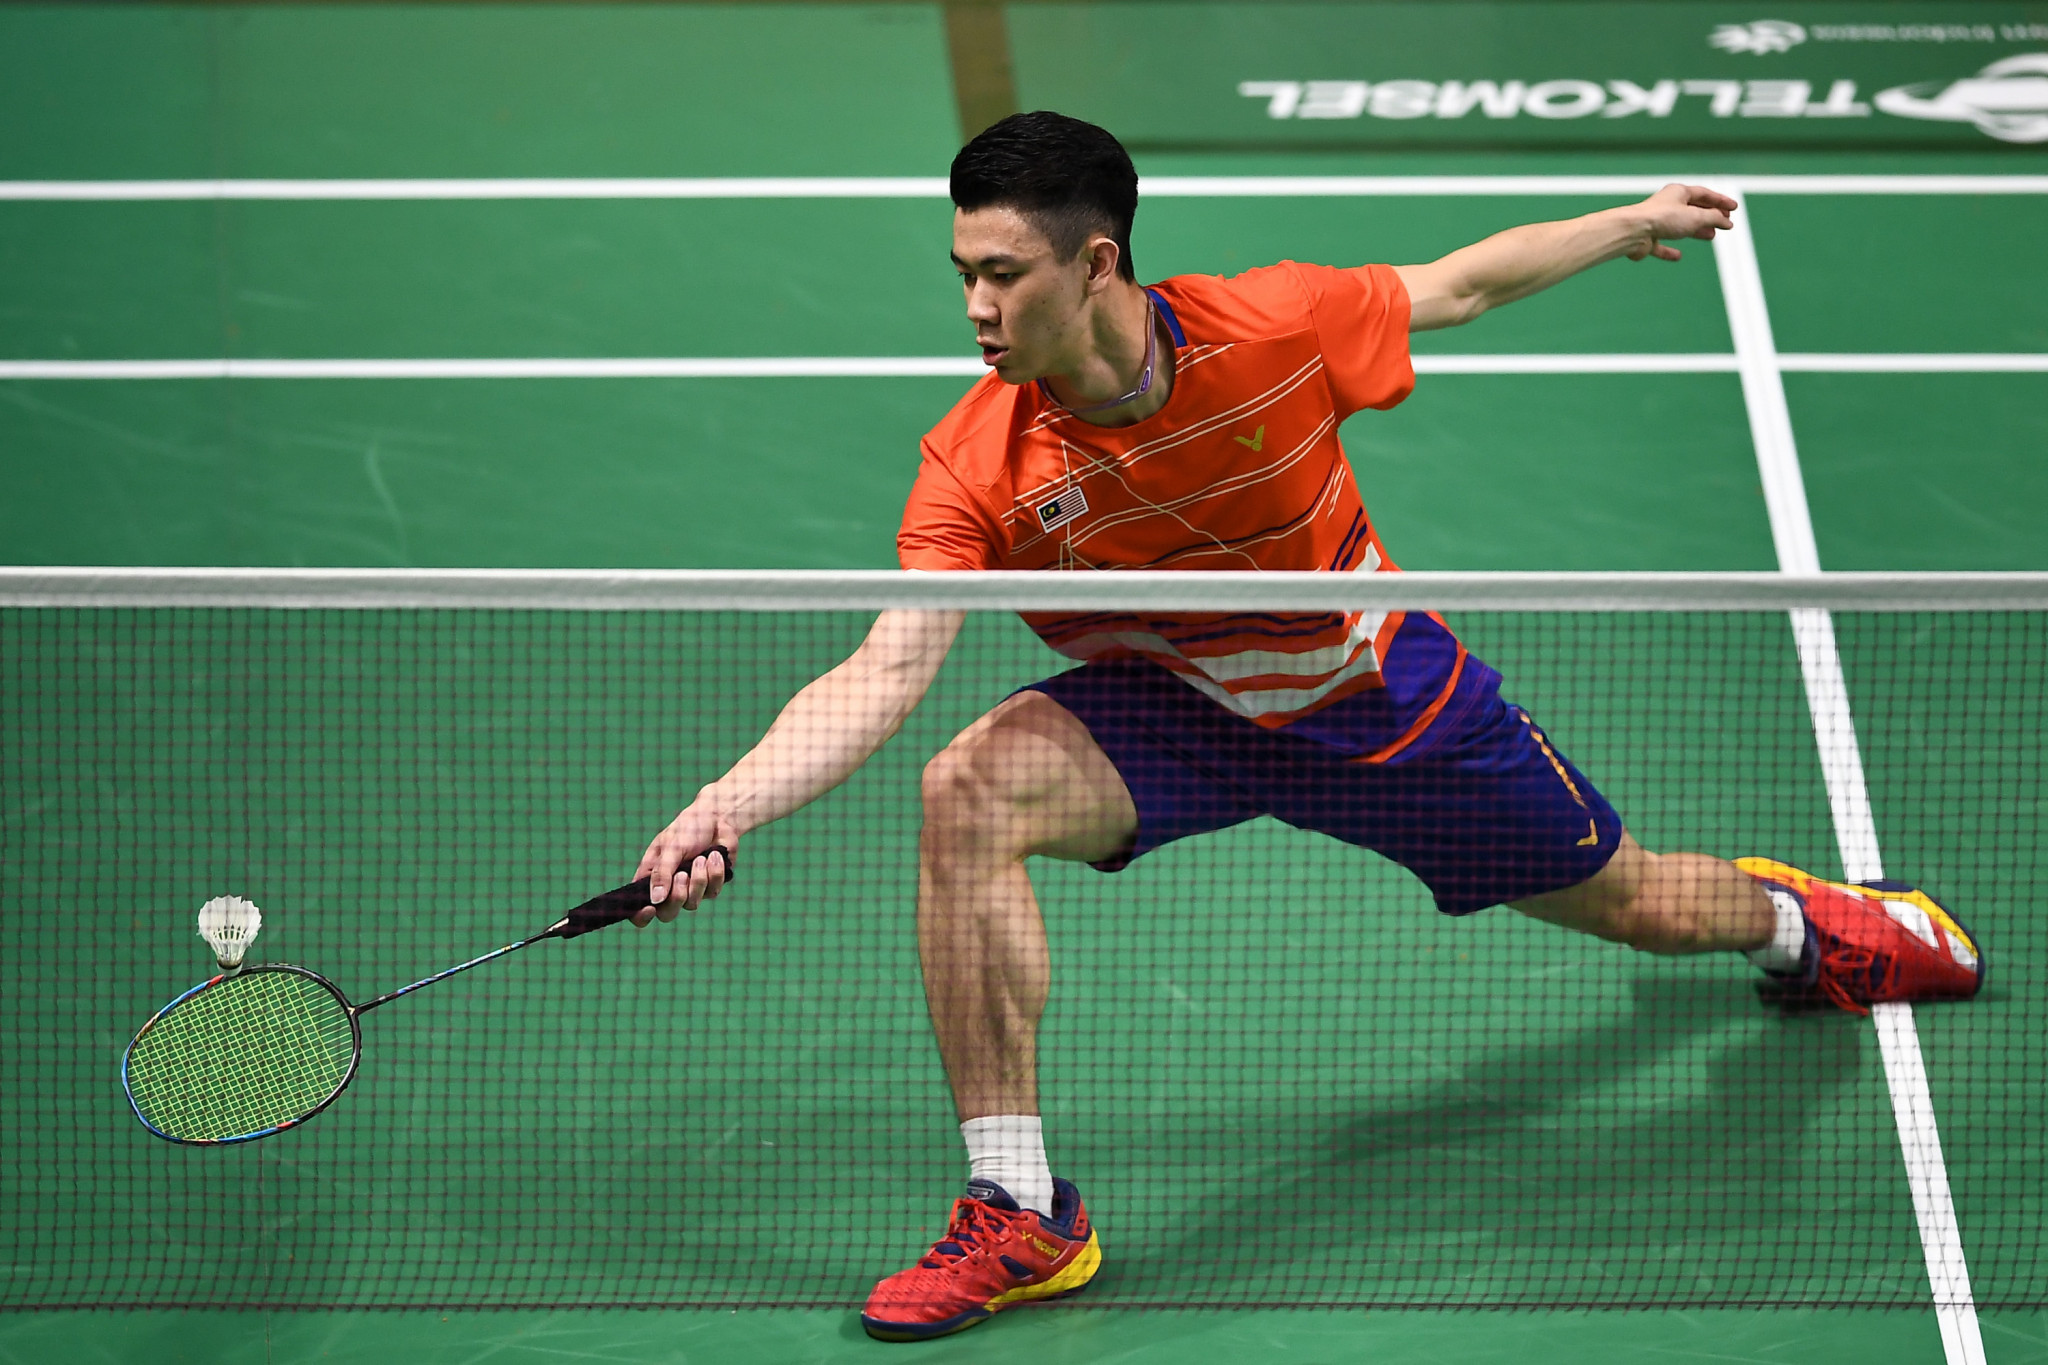 Home favourite Lee comes through qualification at BWF Malaysia Masters